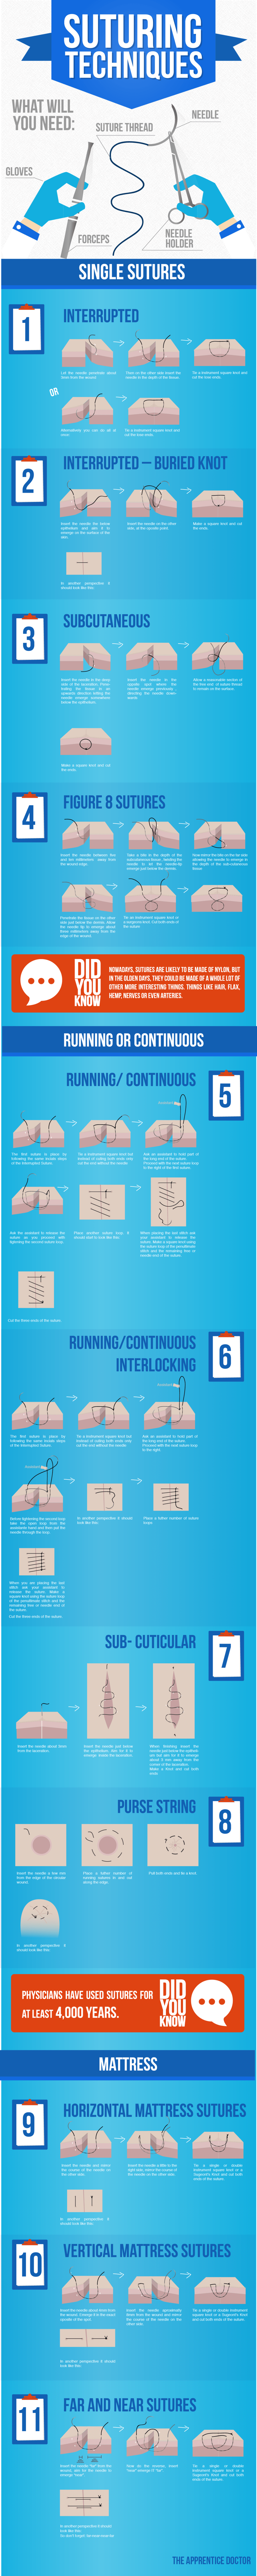 Comprehensive Learners Guide on Suturing Techniques - Infographic